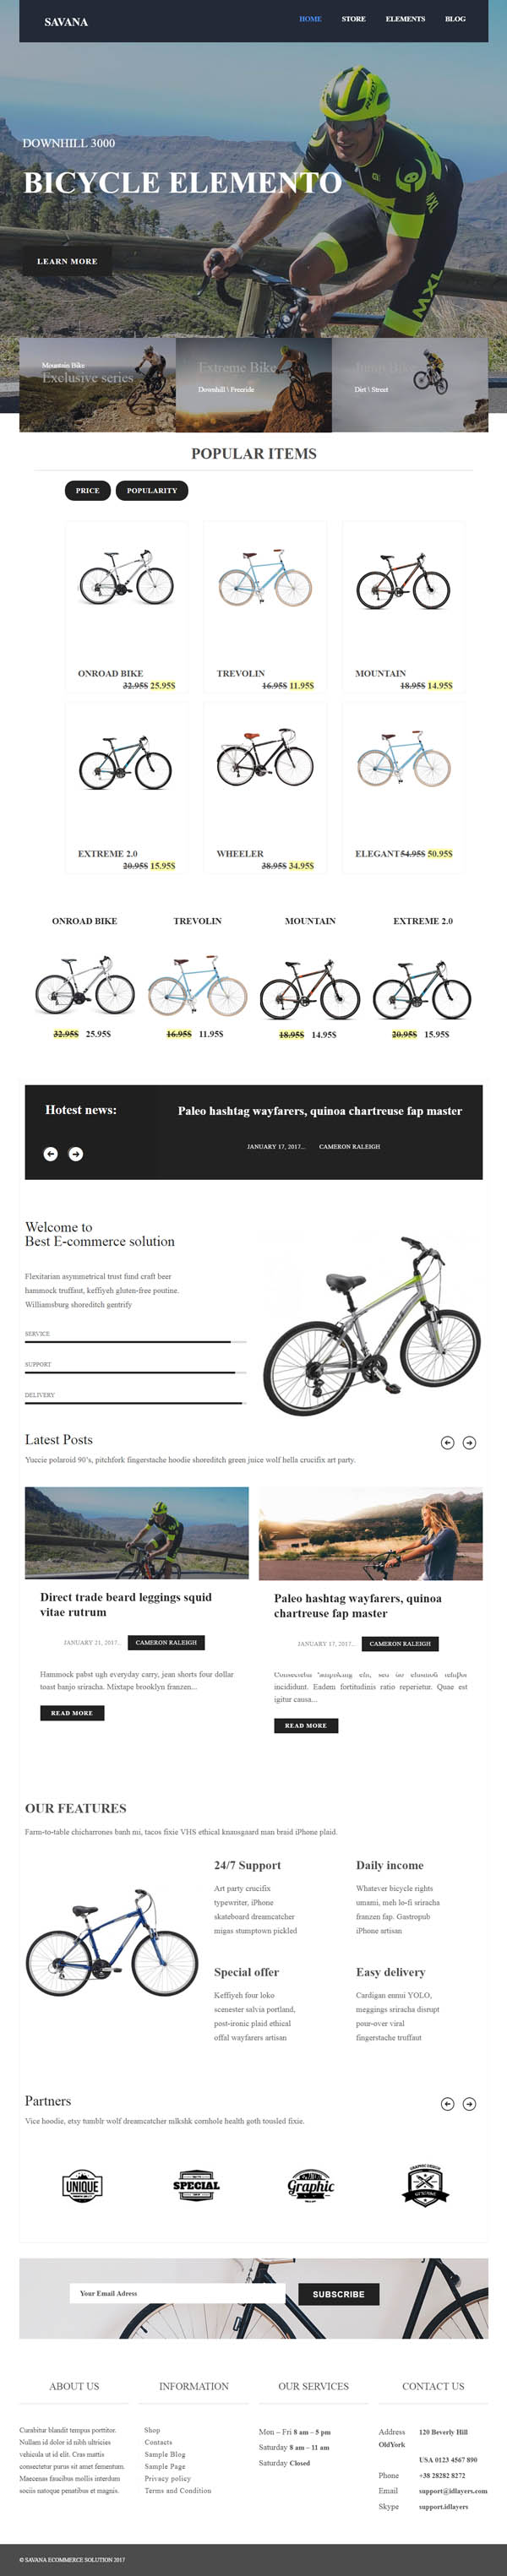 Savana - Multi Concept Responsive eCommerce WordPress Theme